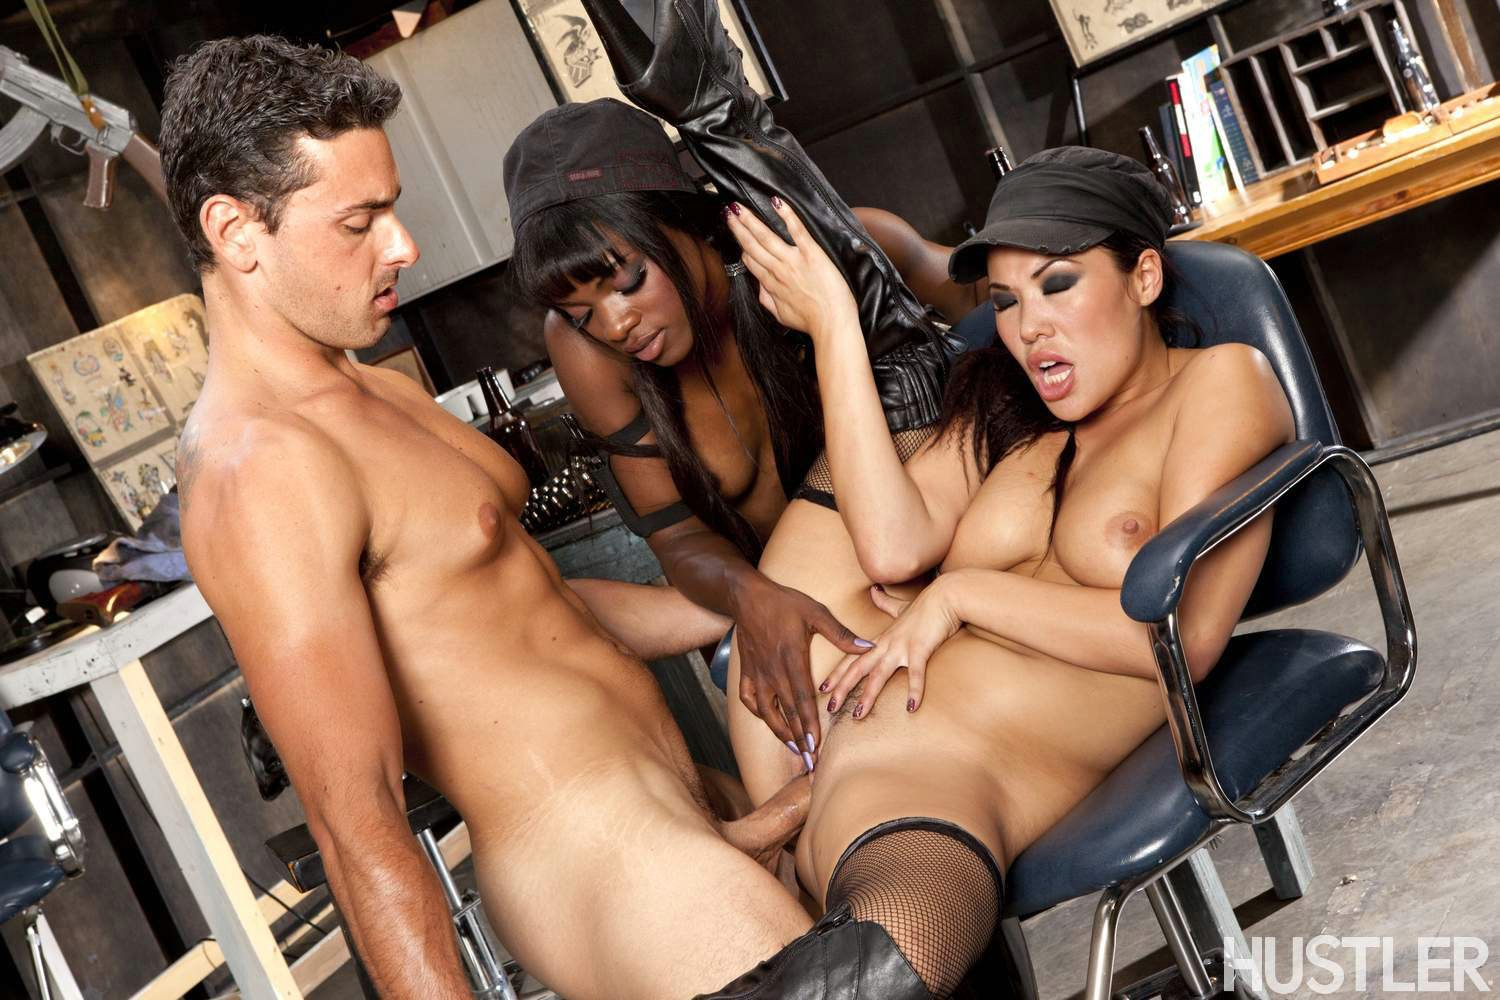 Not ana foxxx in sizzling hot interracial threesome think